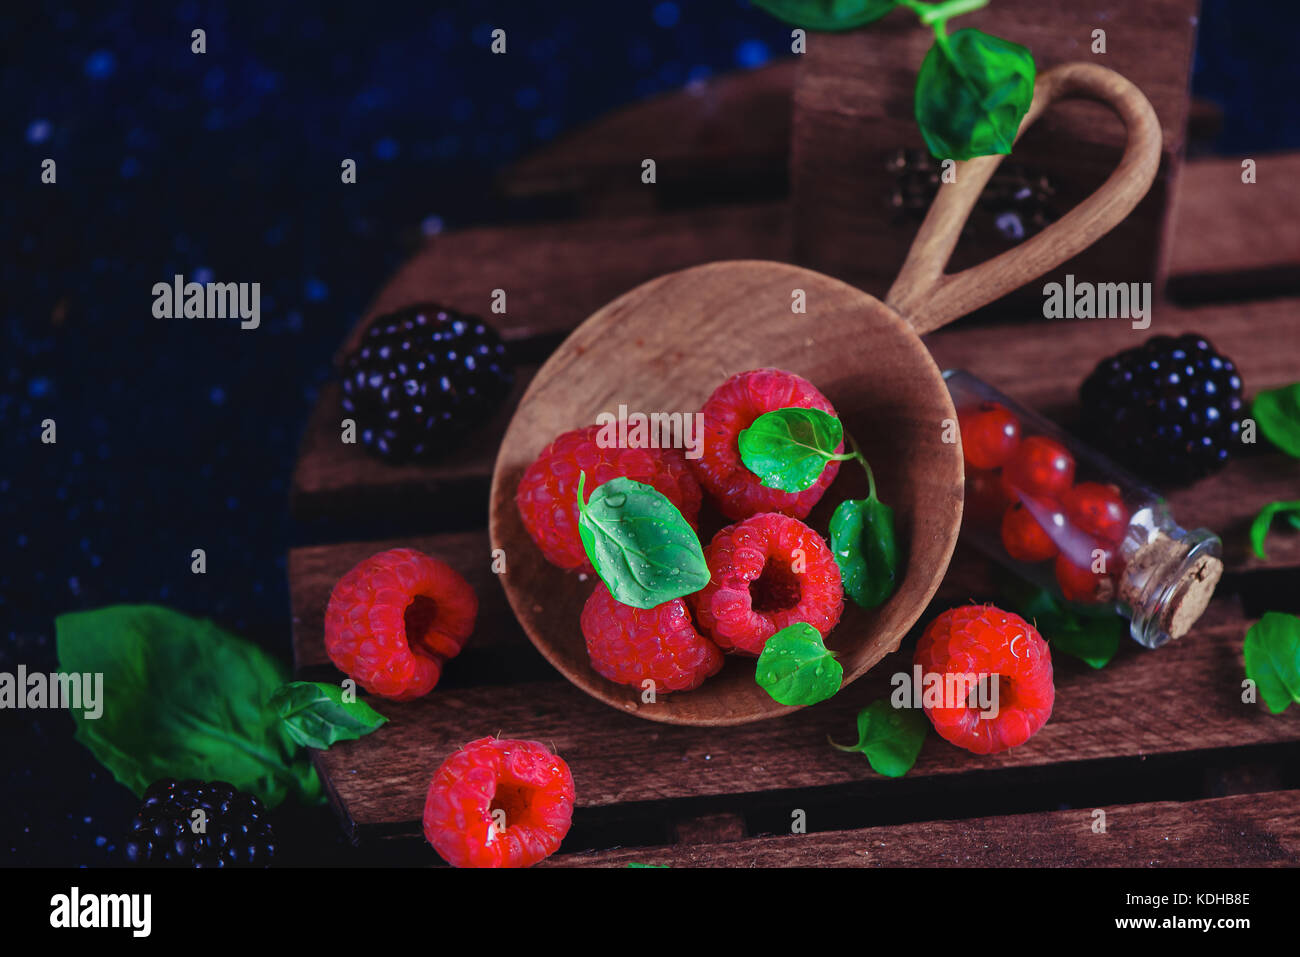 Assorted berries in a handmaiden wooden plate. Raspberry and blackberry with green mint leaves. Dark food photography Stock Photo